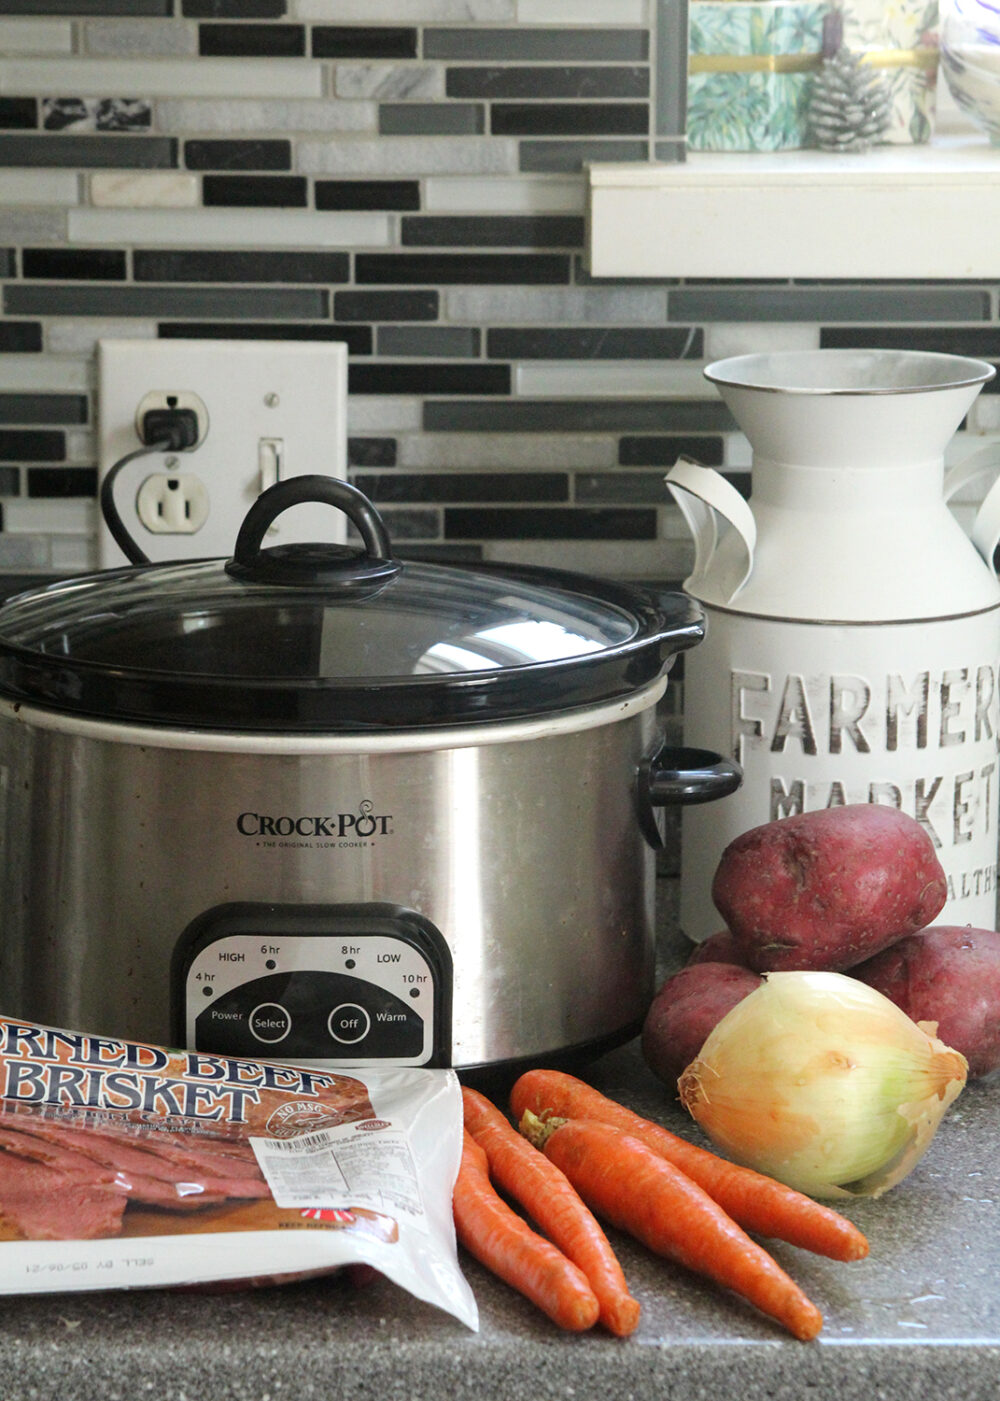 A Crock-Pot, potatoes, carrots, an onion and a package of corned beef sit on a counter.